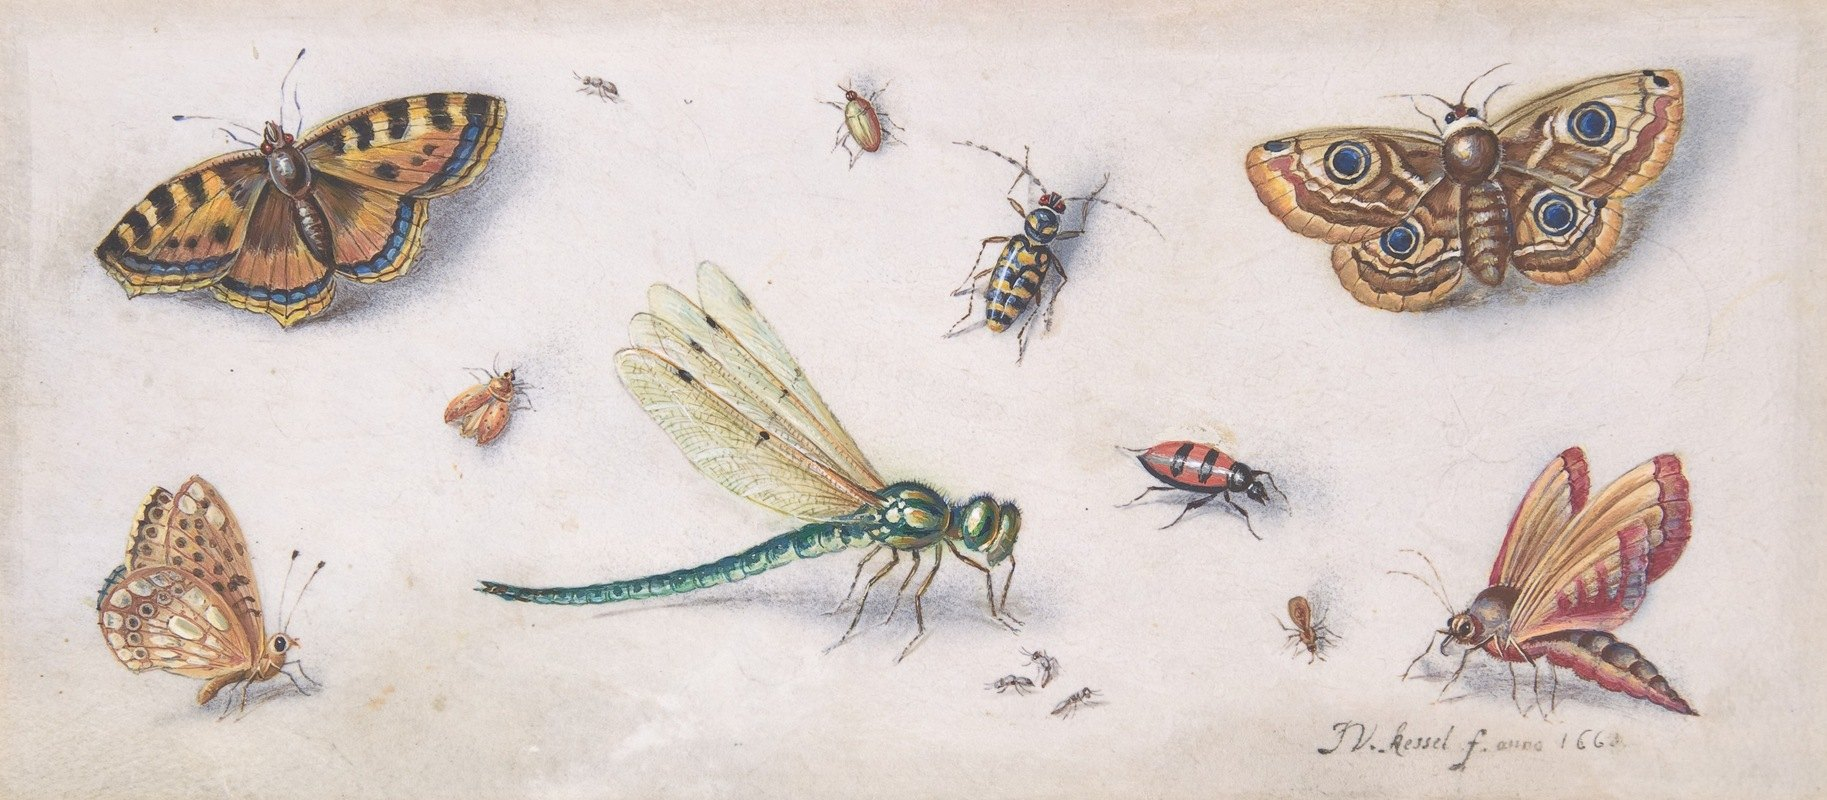 Jan Van Kessel The Elder - Insects, Butterflies, and a Dragonfly